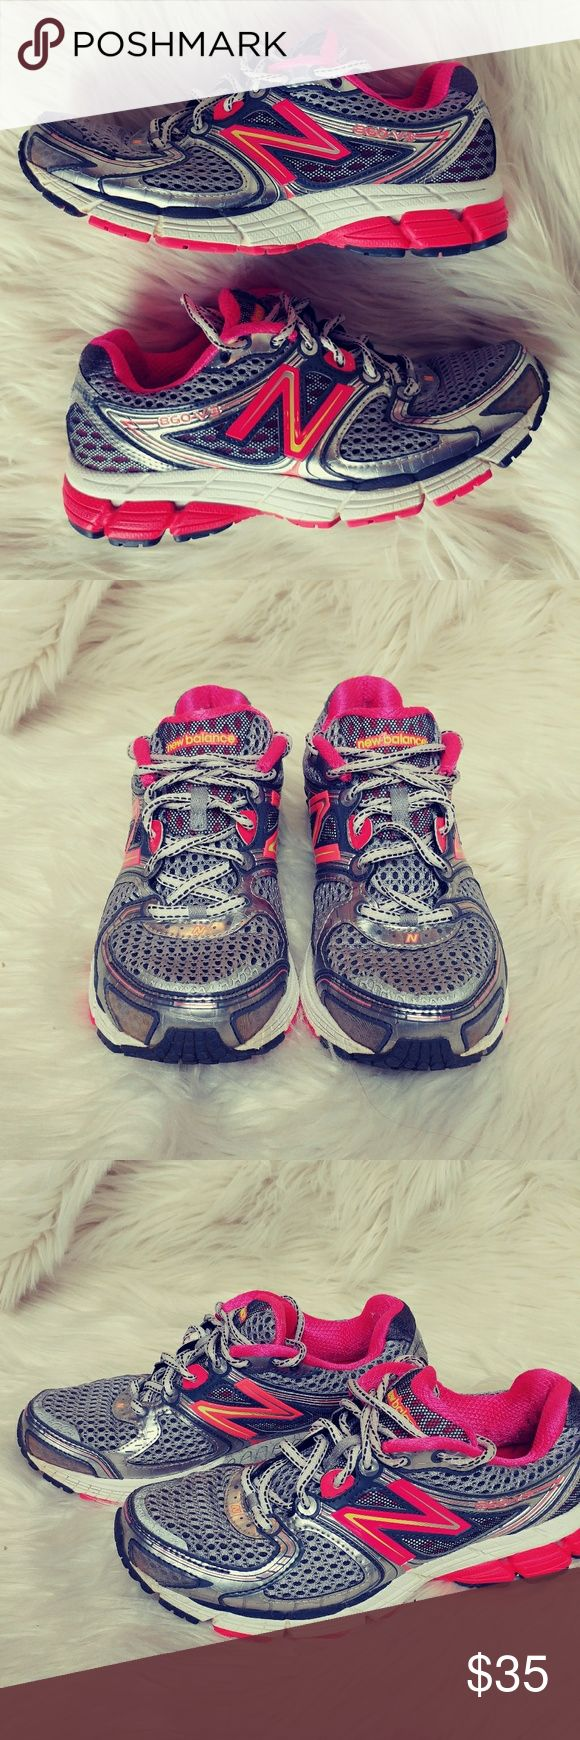 NEW BALANCE 860 V3 RUNNING SHOE EXCELLENT PRELOVED CONDITION, minimal wear, super clean. These have a pink lining and yellow and orange trim the shoe. Feel free to ask any questions BUNDLE FOR BETTER DISCOUNT New Balance Shoes Athletic Shoes